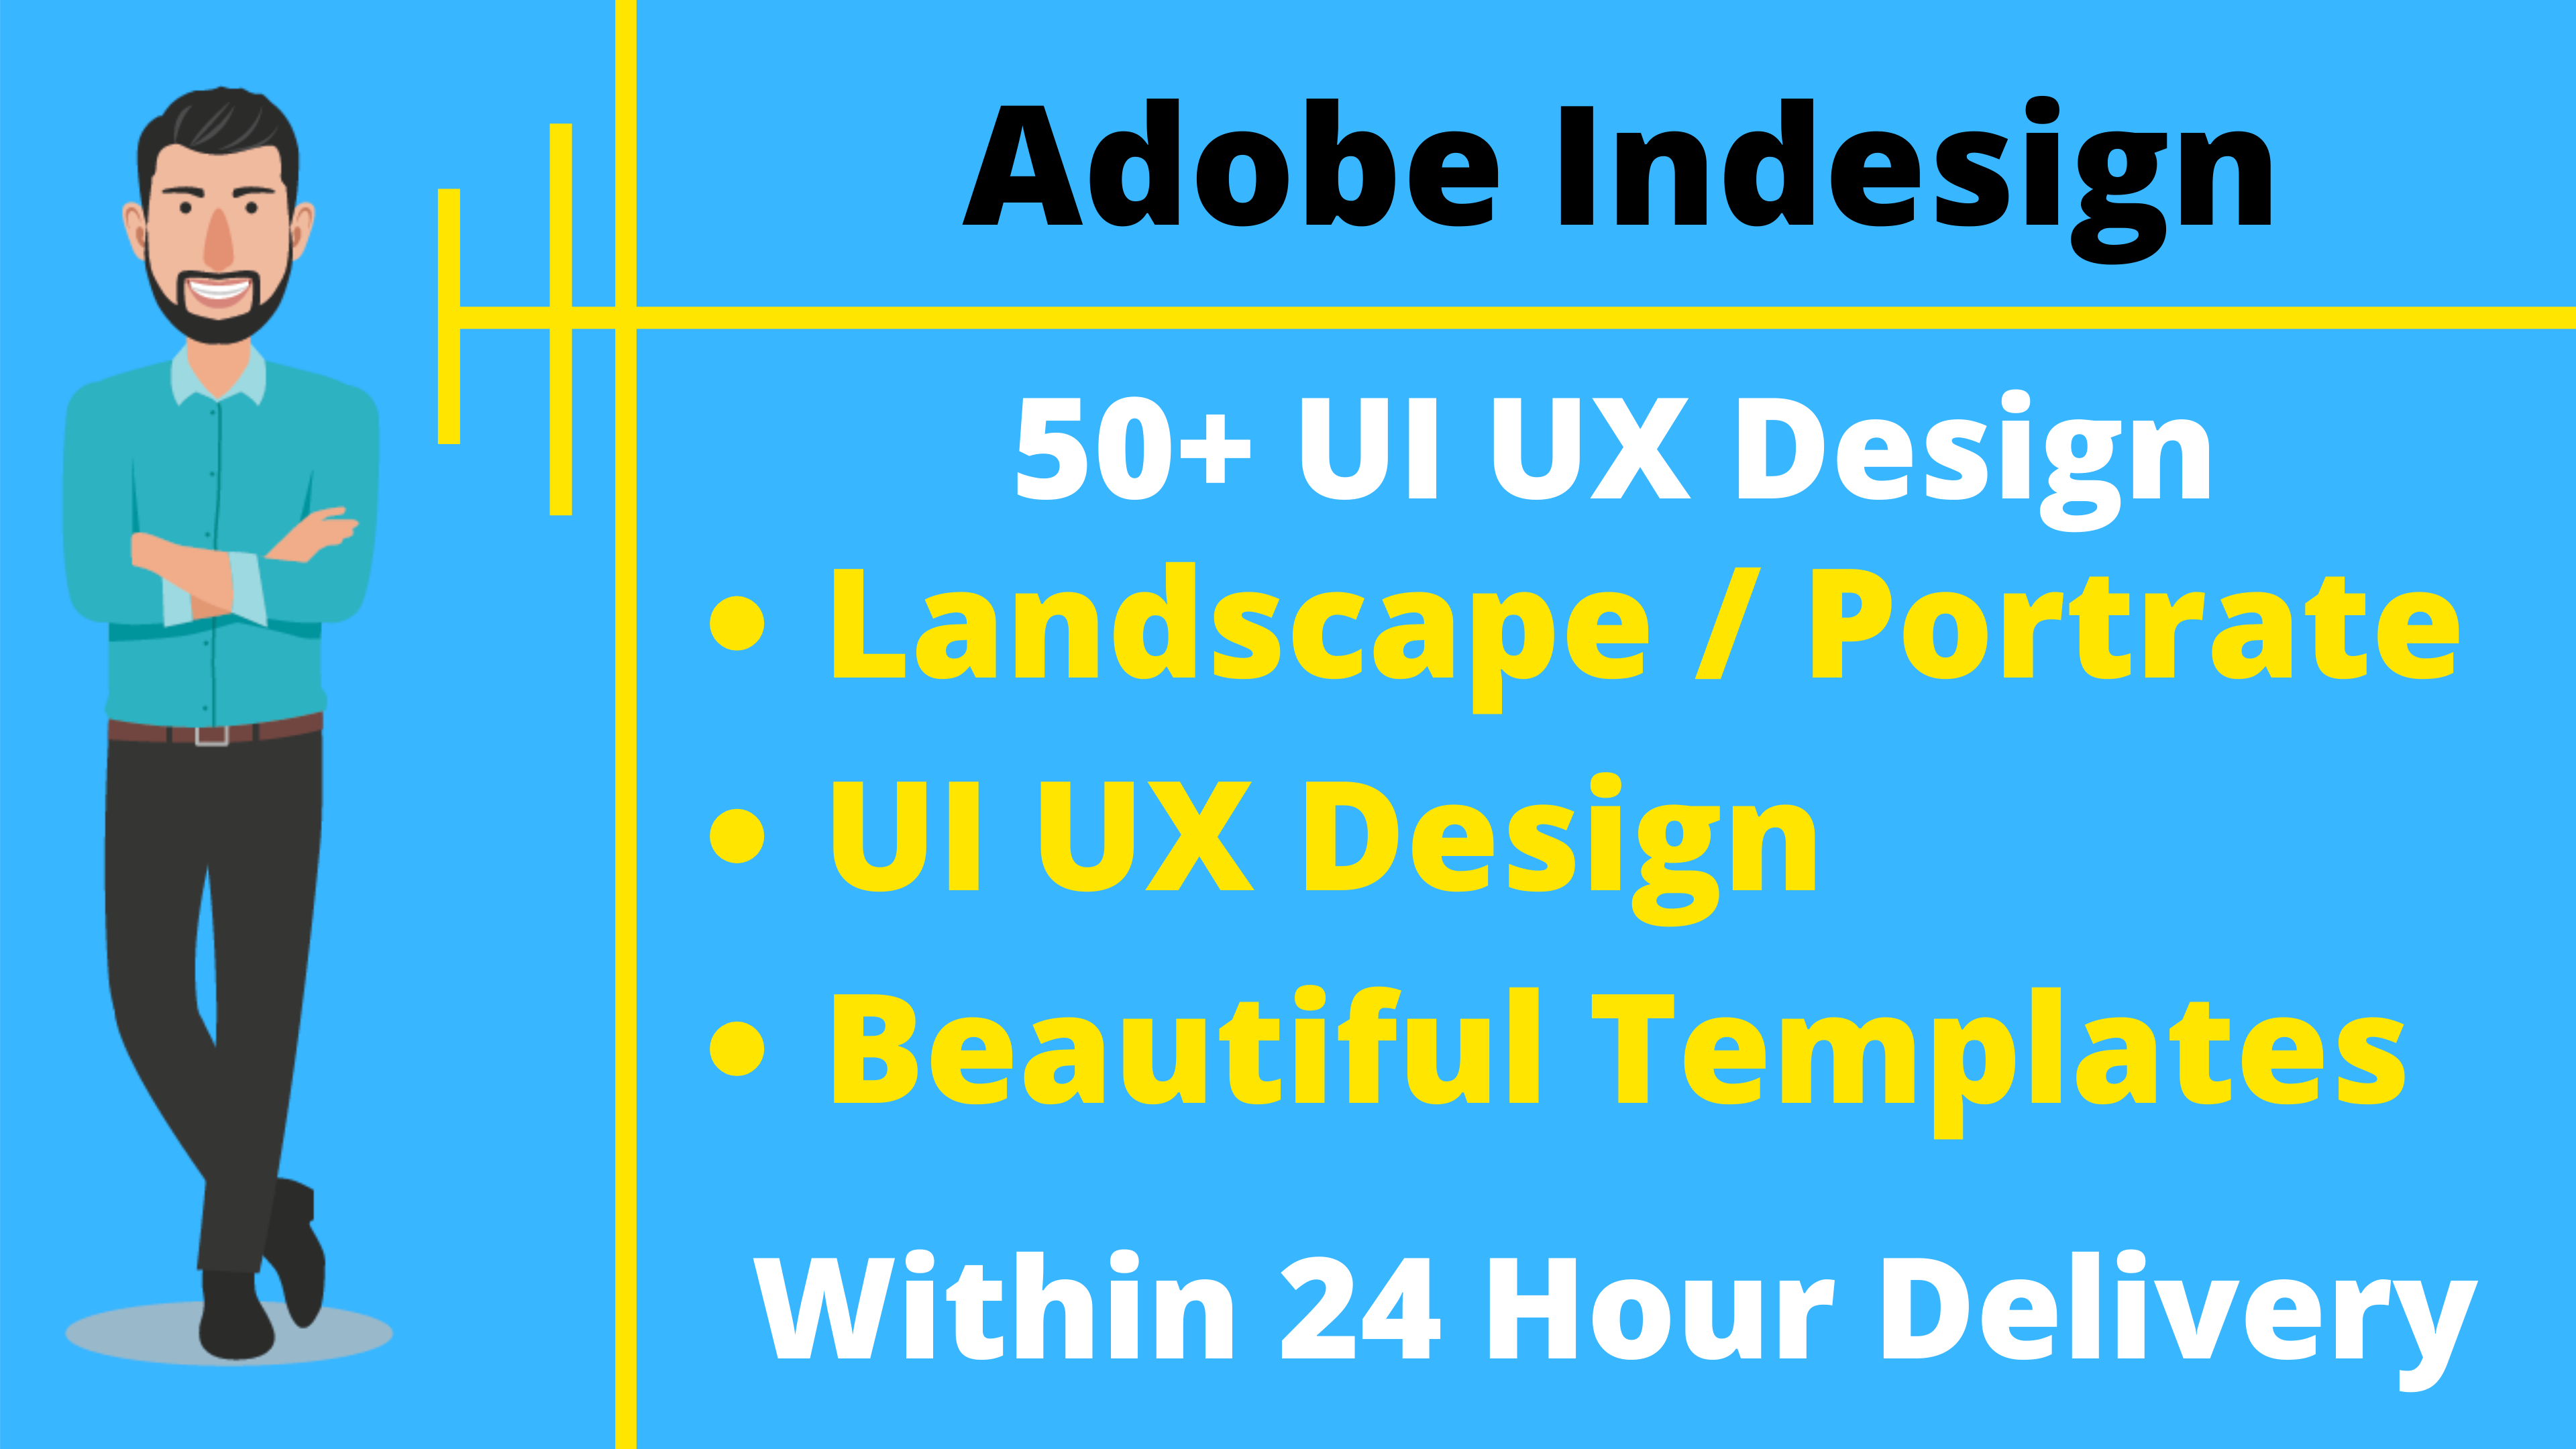 50+ Adobe Indesign UI UX Design Templates